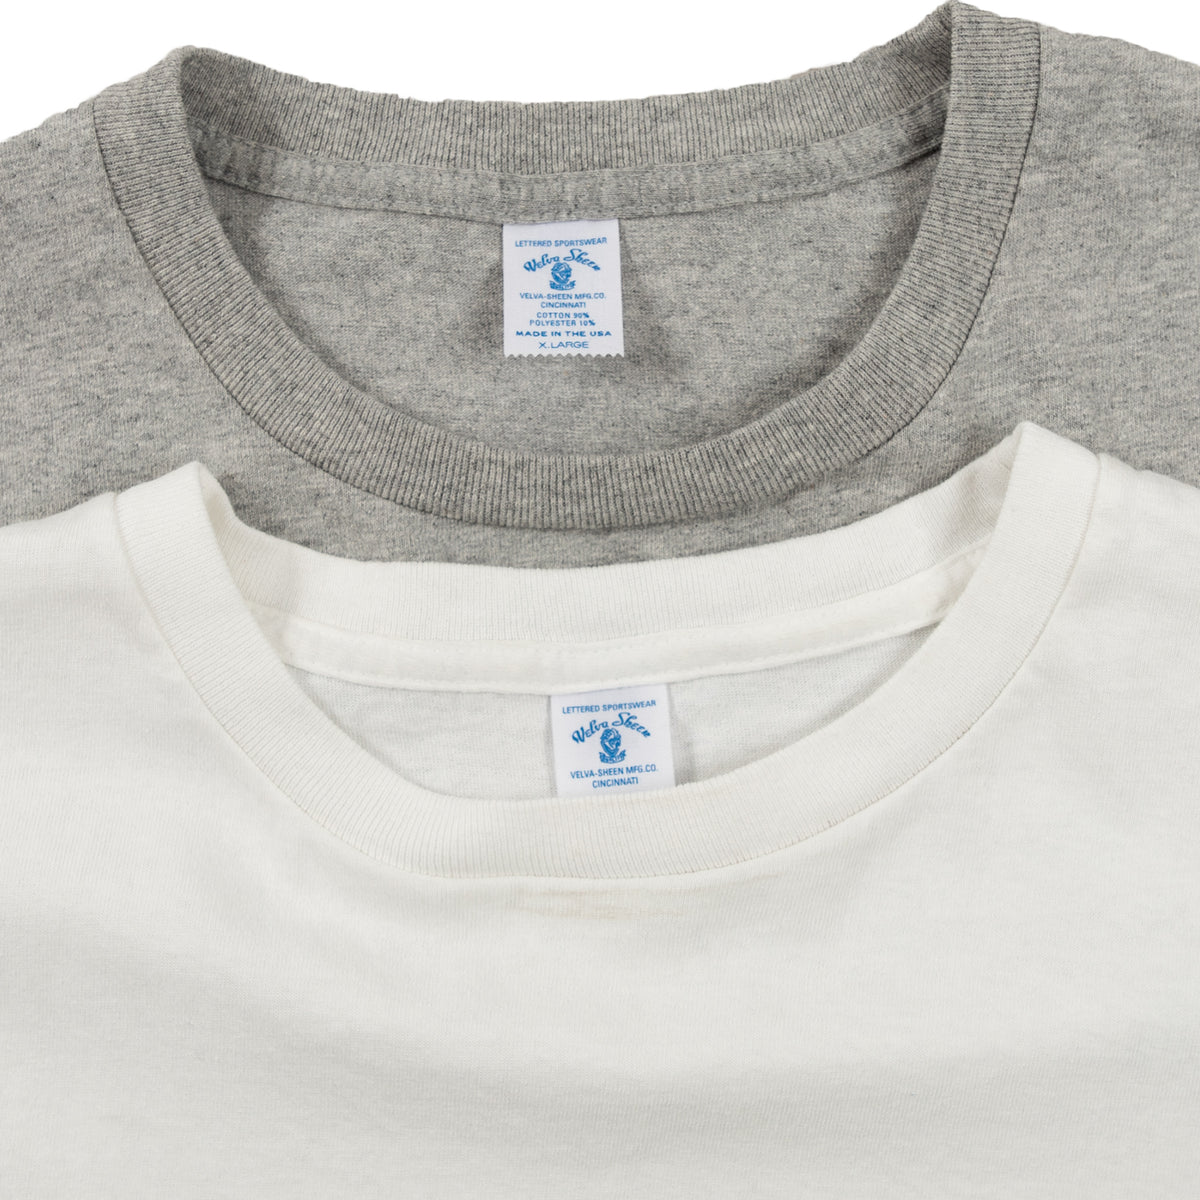 Velva Sheen Crewneck Tee Shirt T-Shirt Two Pack White Grey Collar